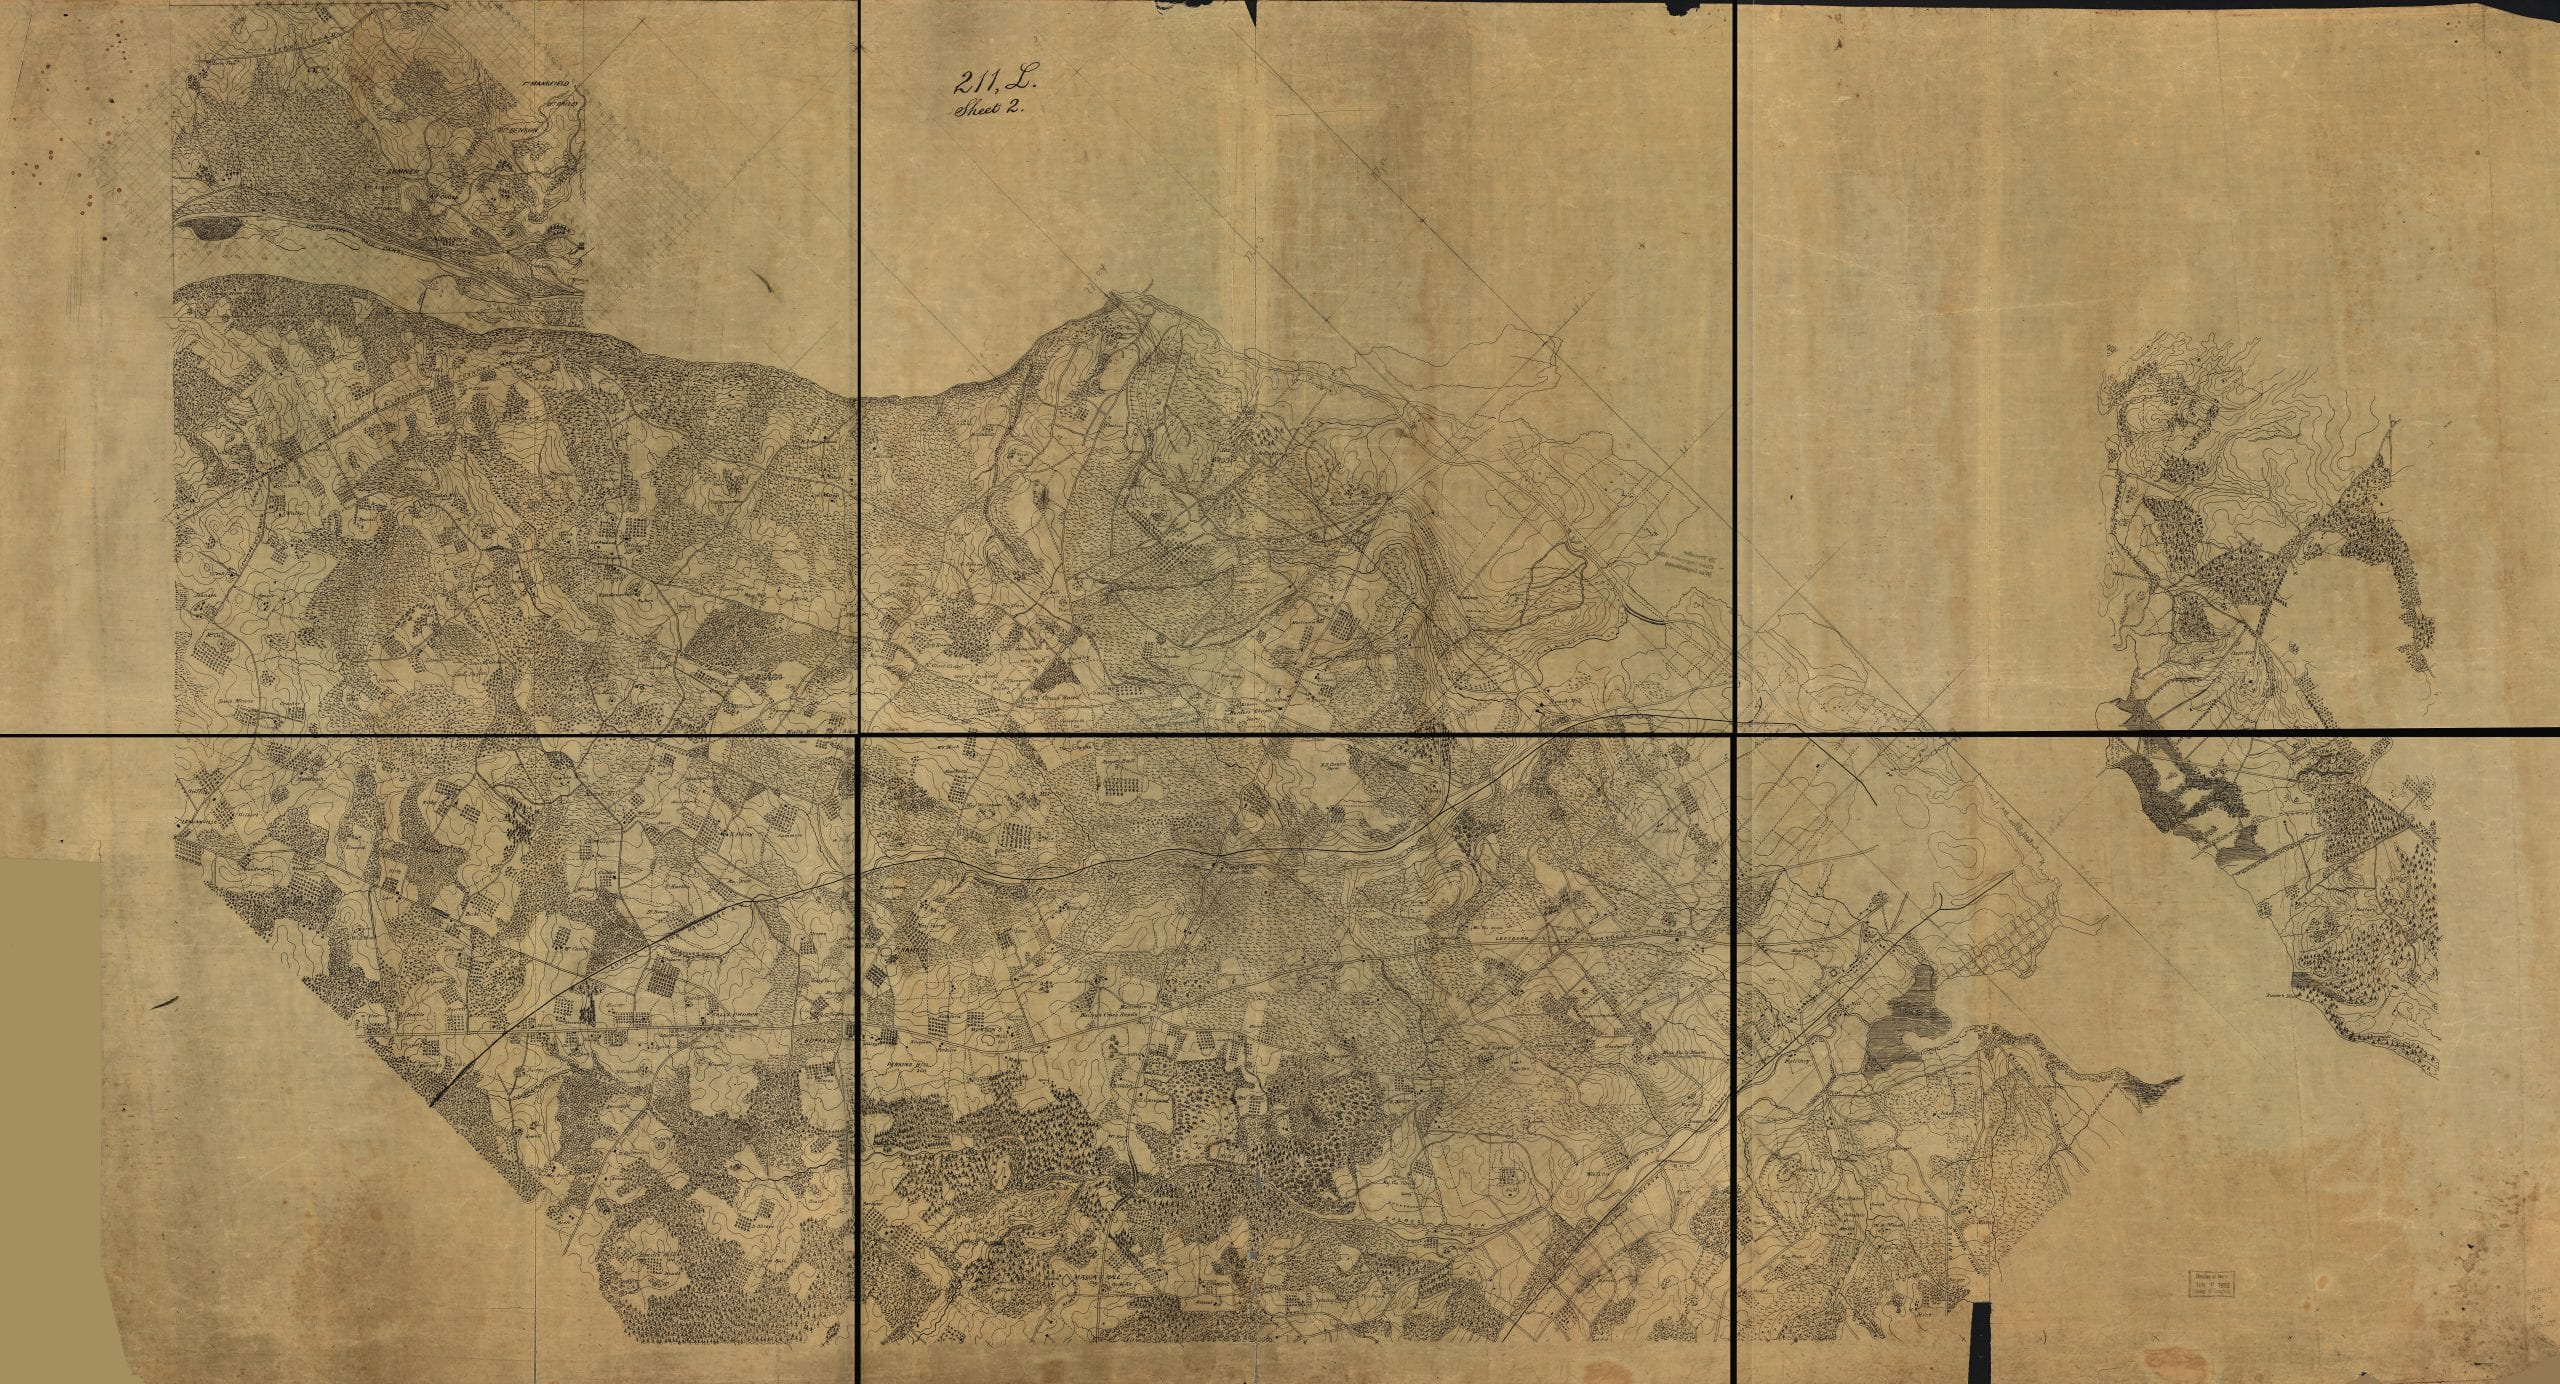 Civil War detailed map of part of Virginia from Alexandria to the Potomac River above Washington, D.C.